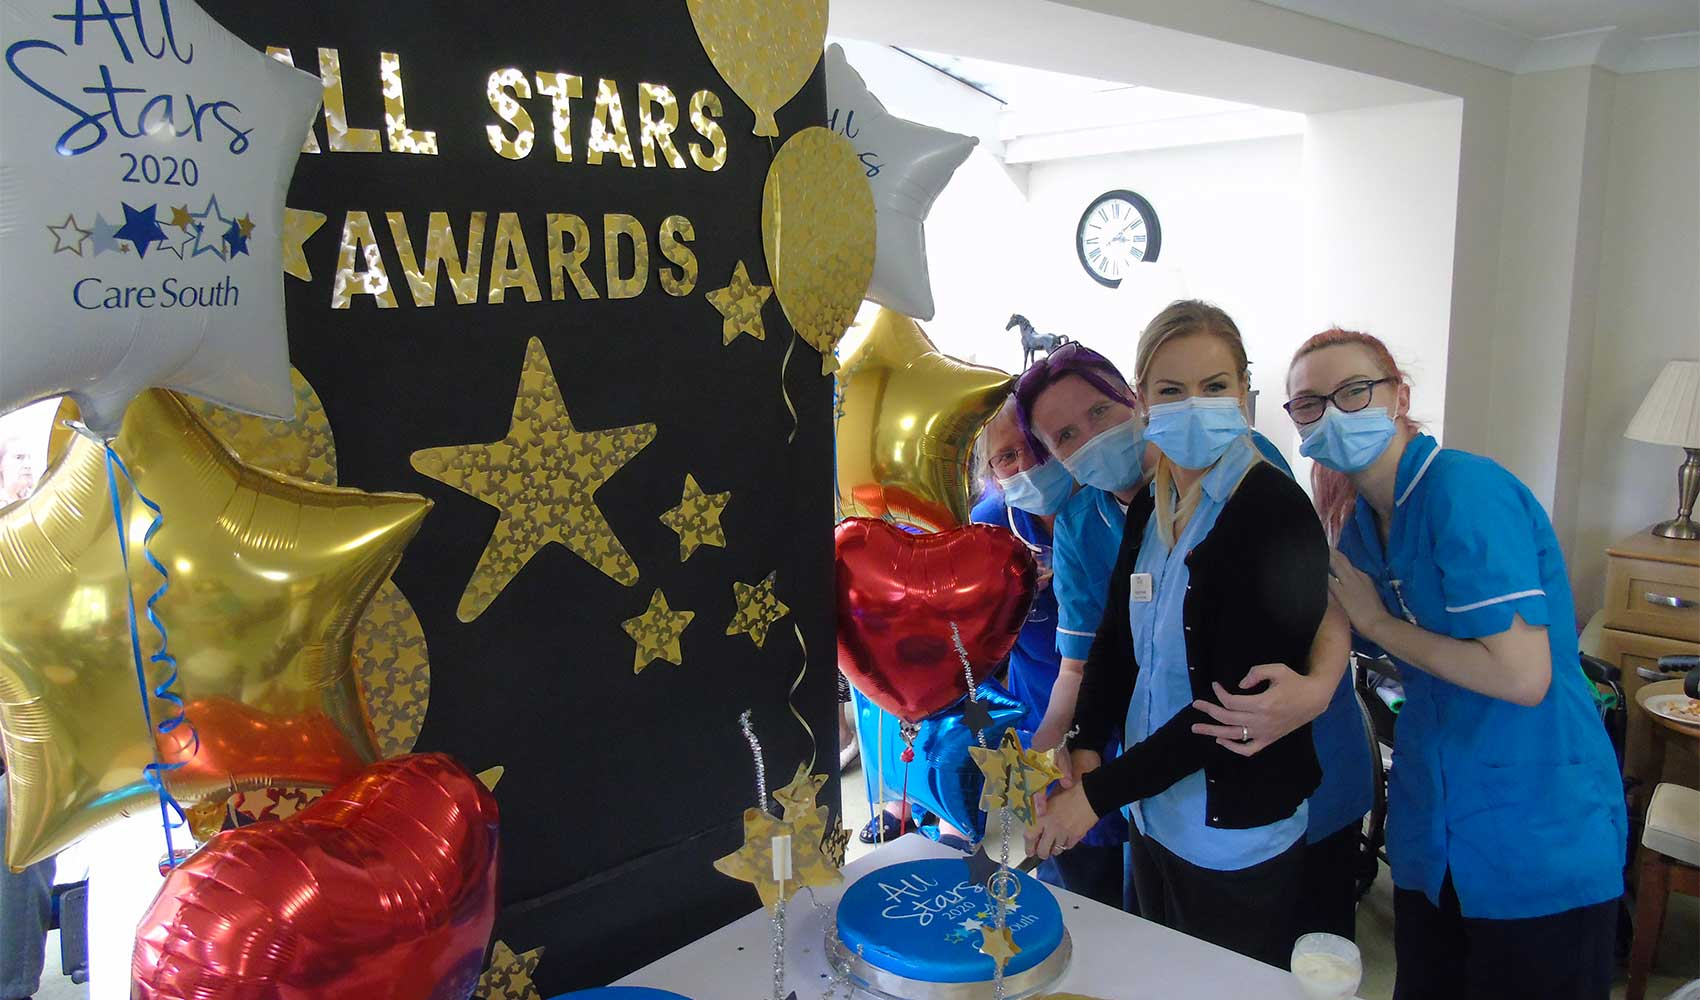 Fairlawn celebrate Care South All Stars Awards 2020